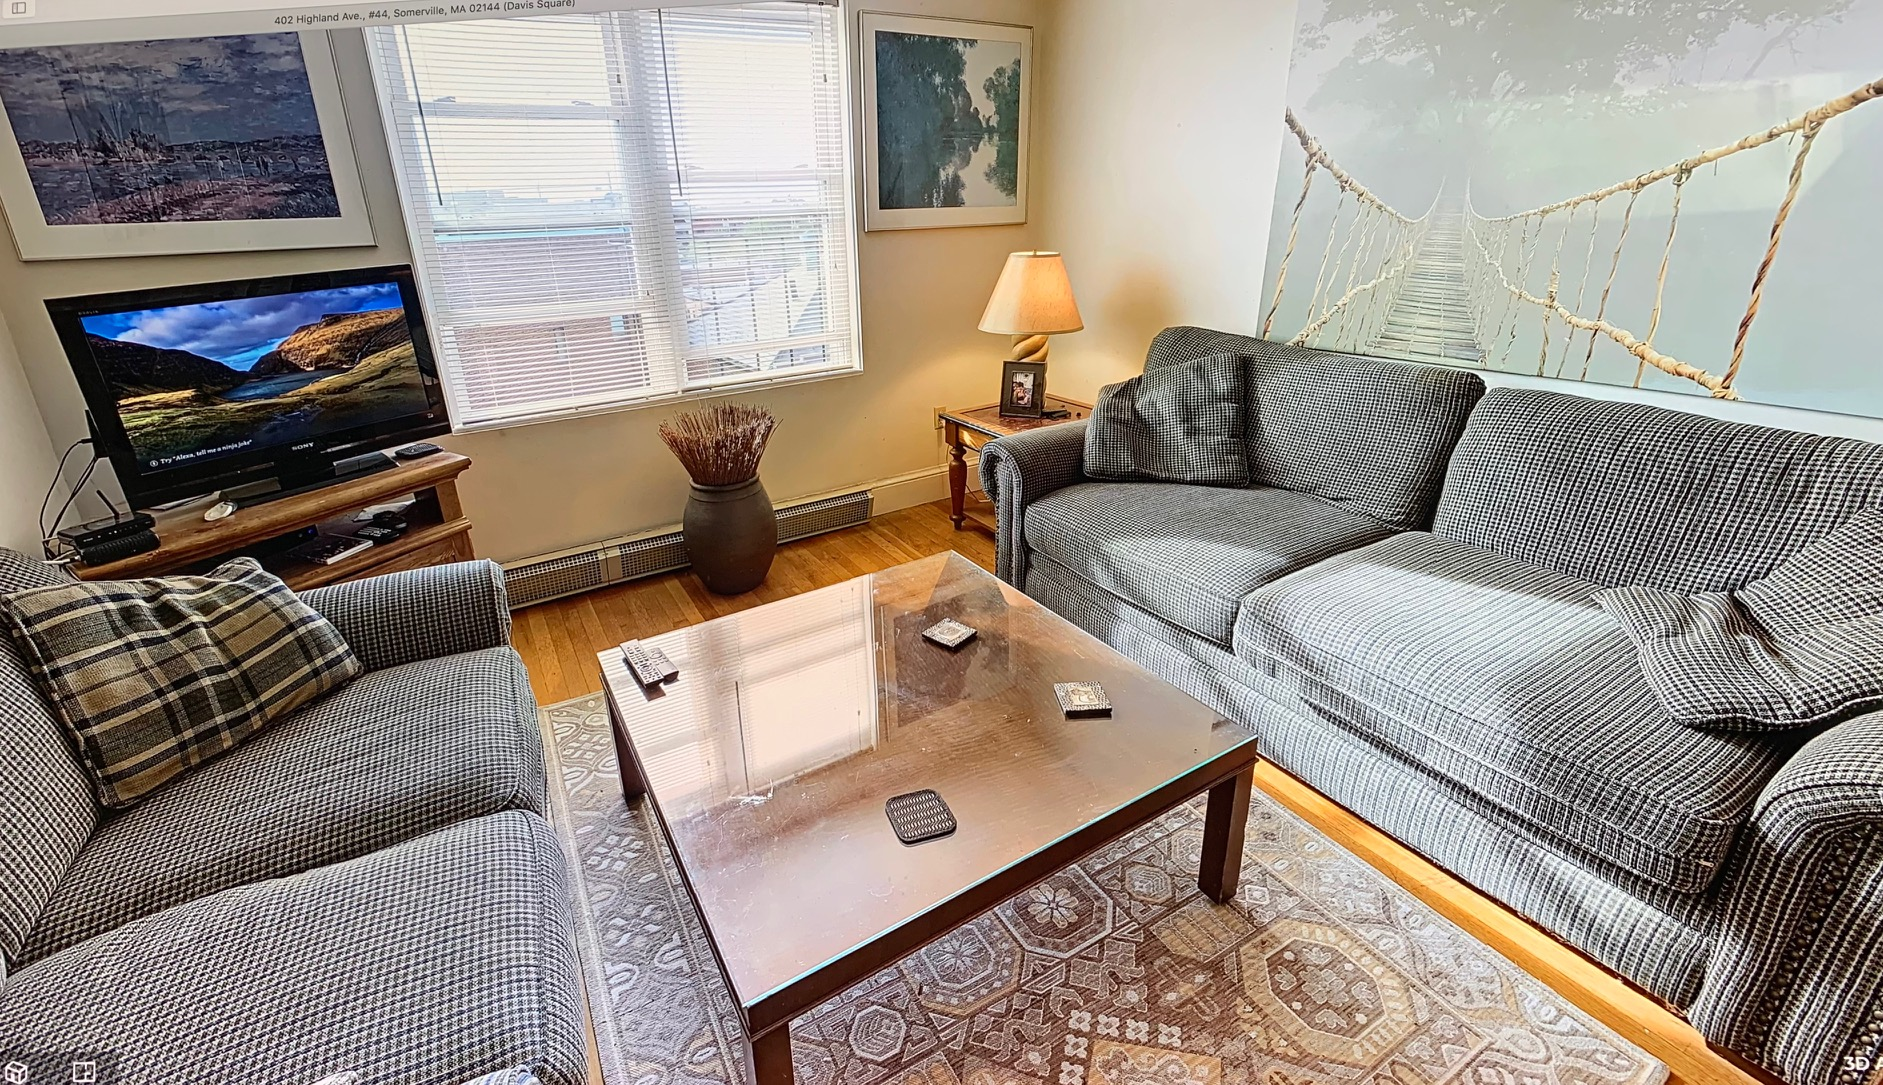 1 Bed, 1 Bath apartment in Somerville, Davis Square for $1,995